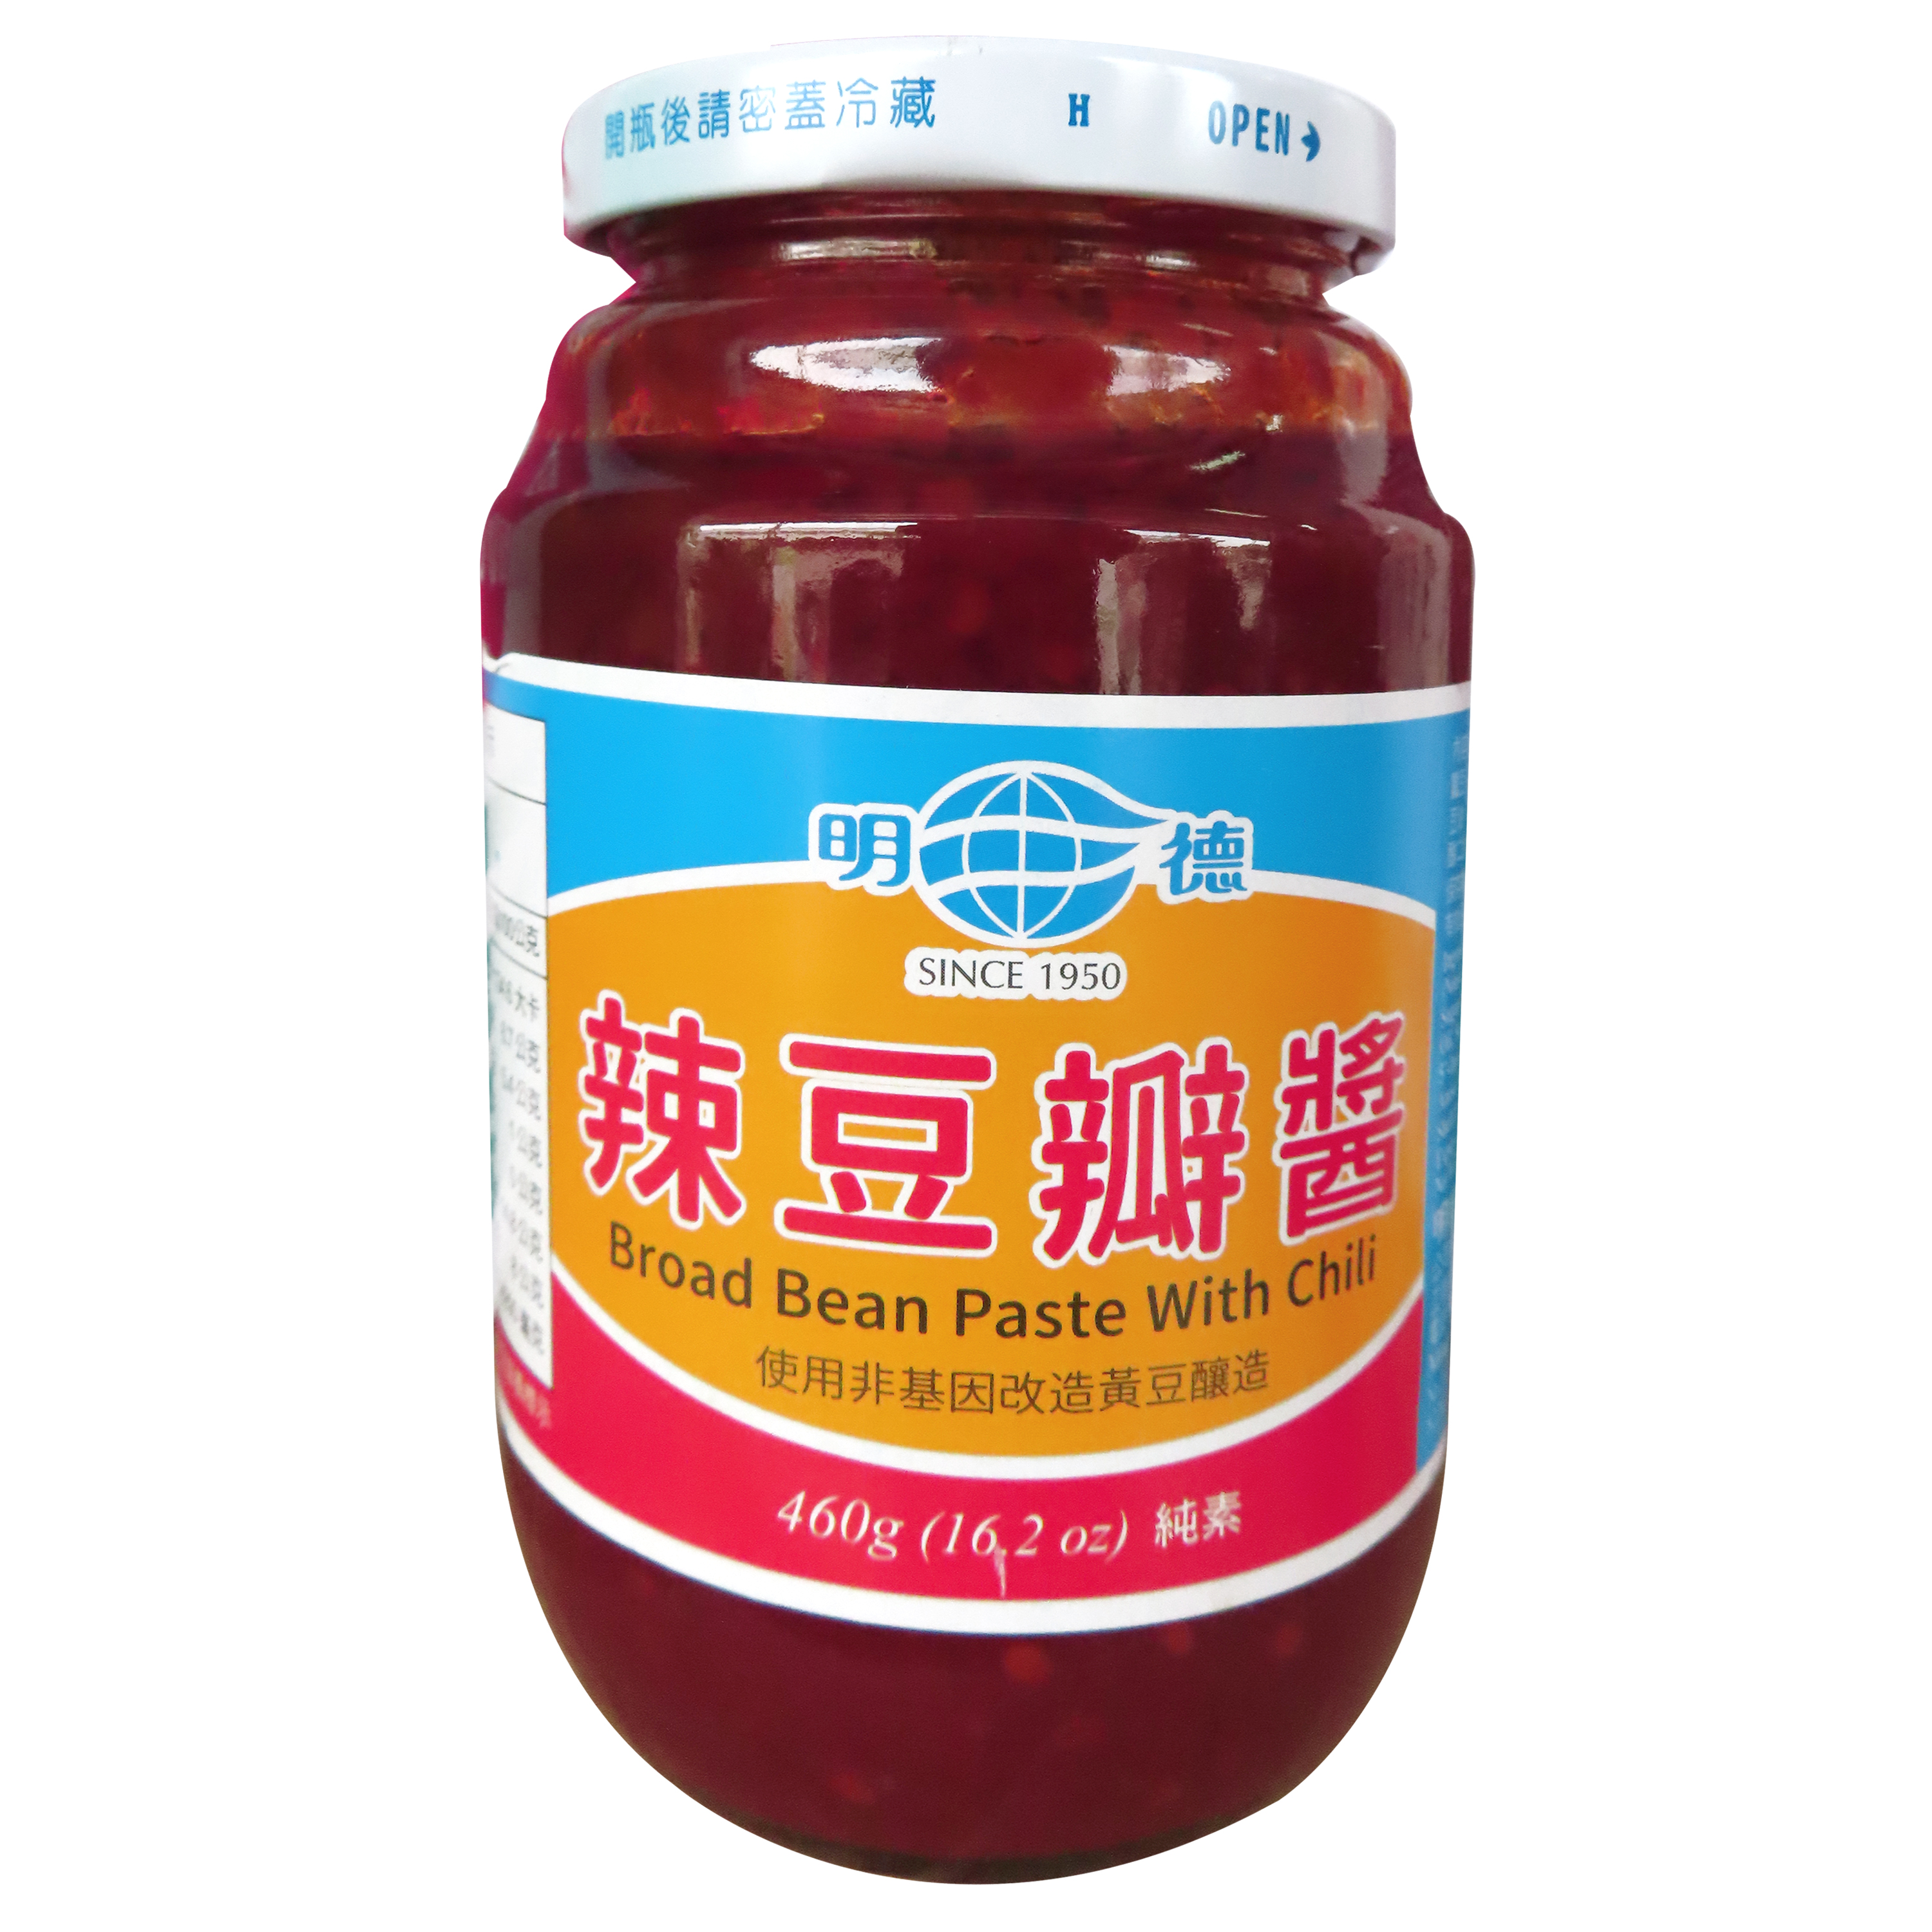 Image Broad Bean Paste with Chilli 明德-辣豆瓣酱 460grams